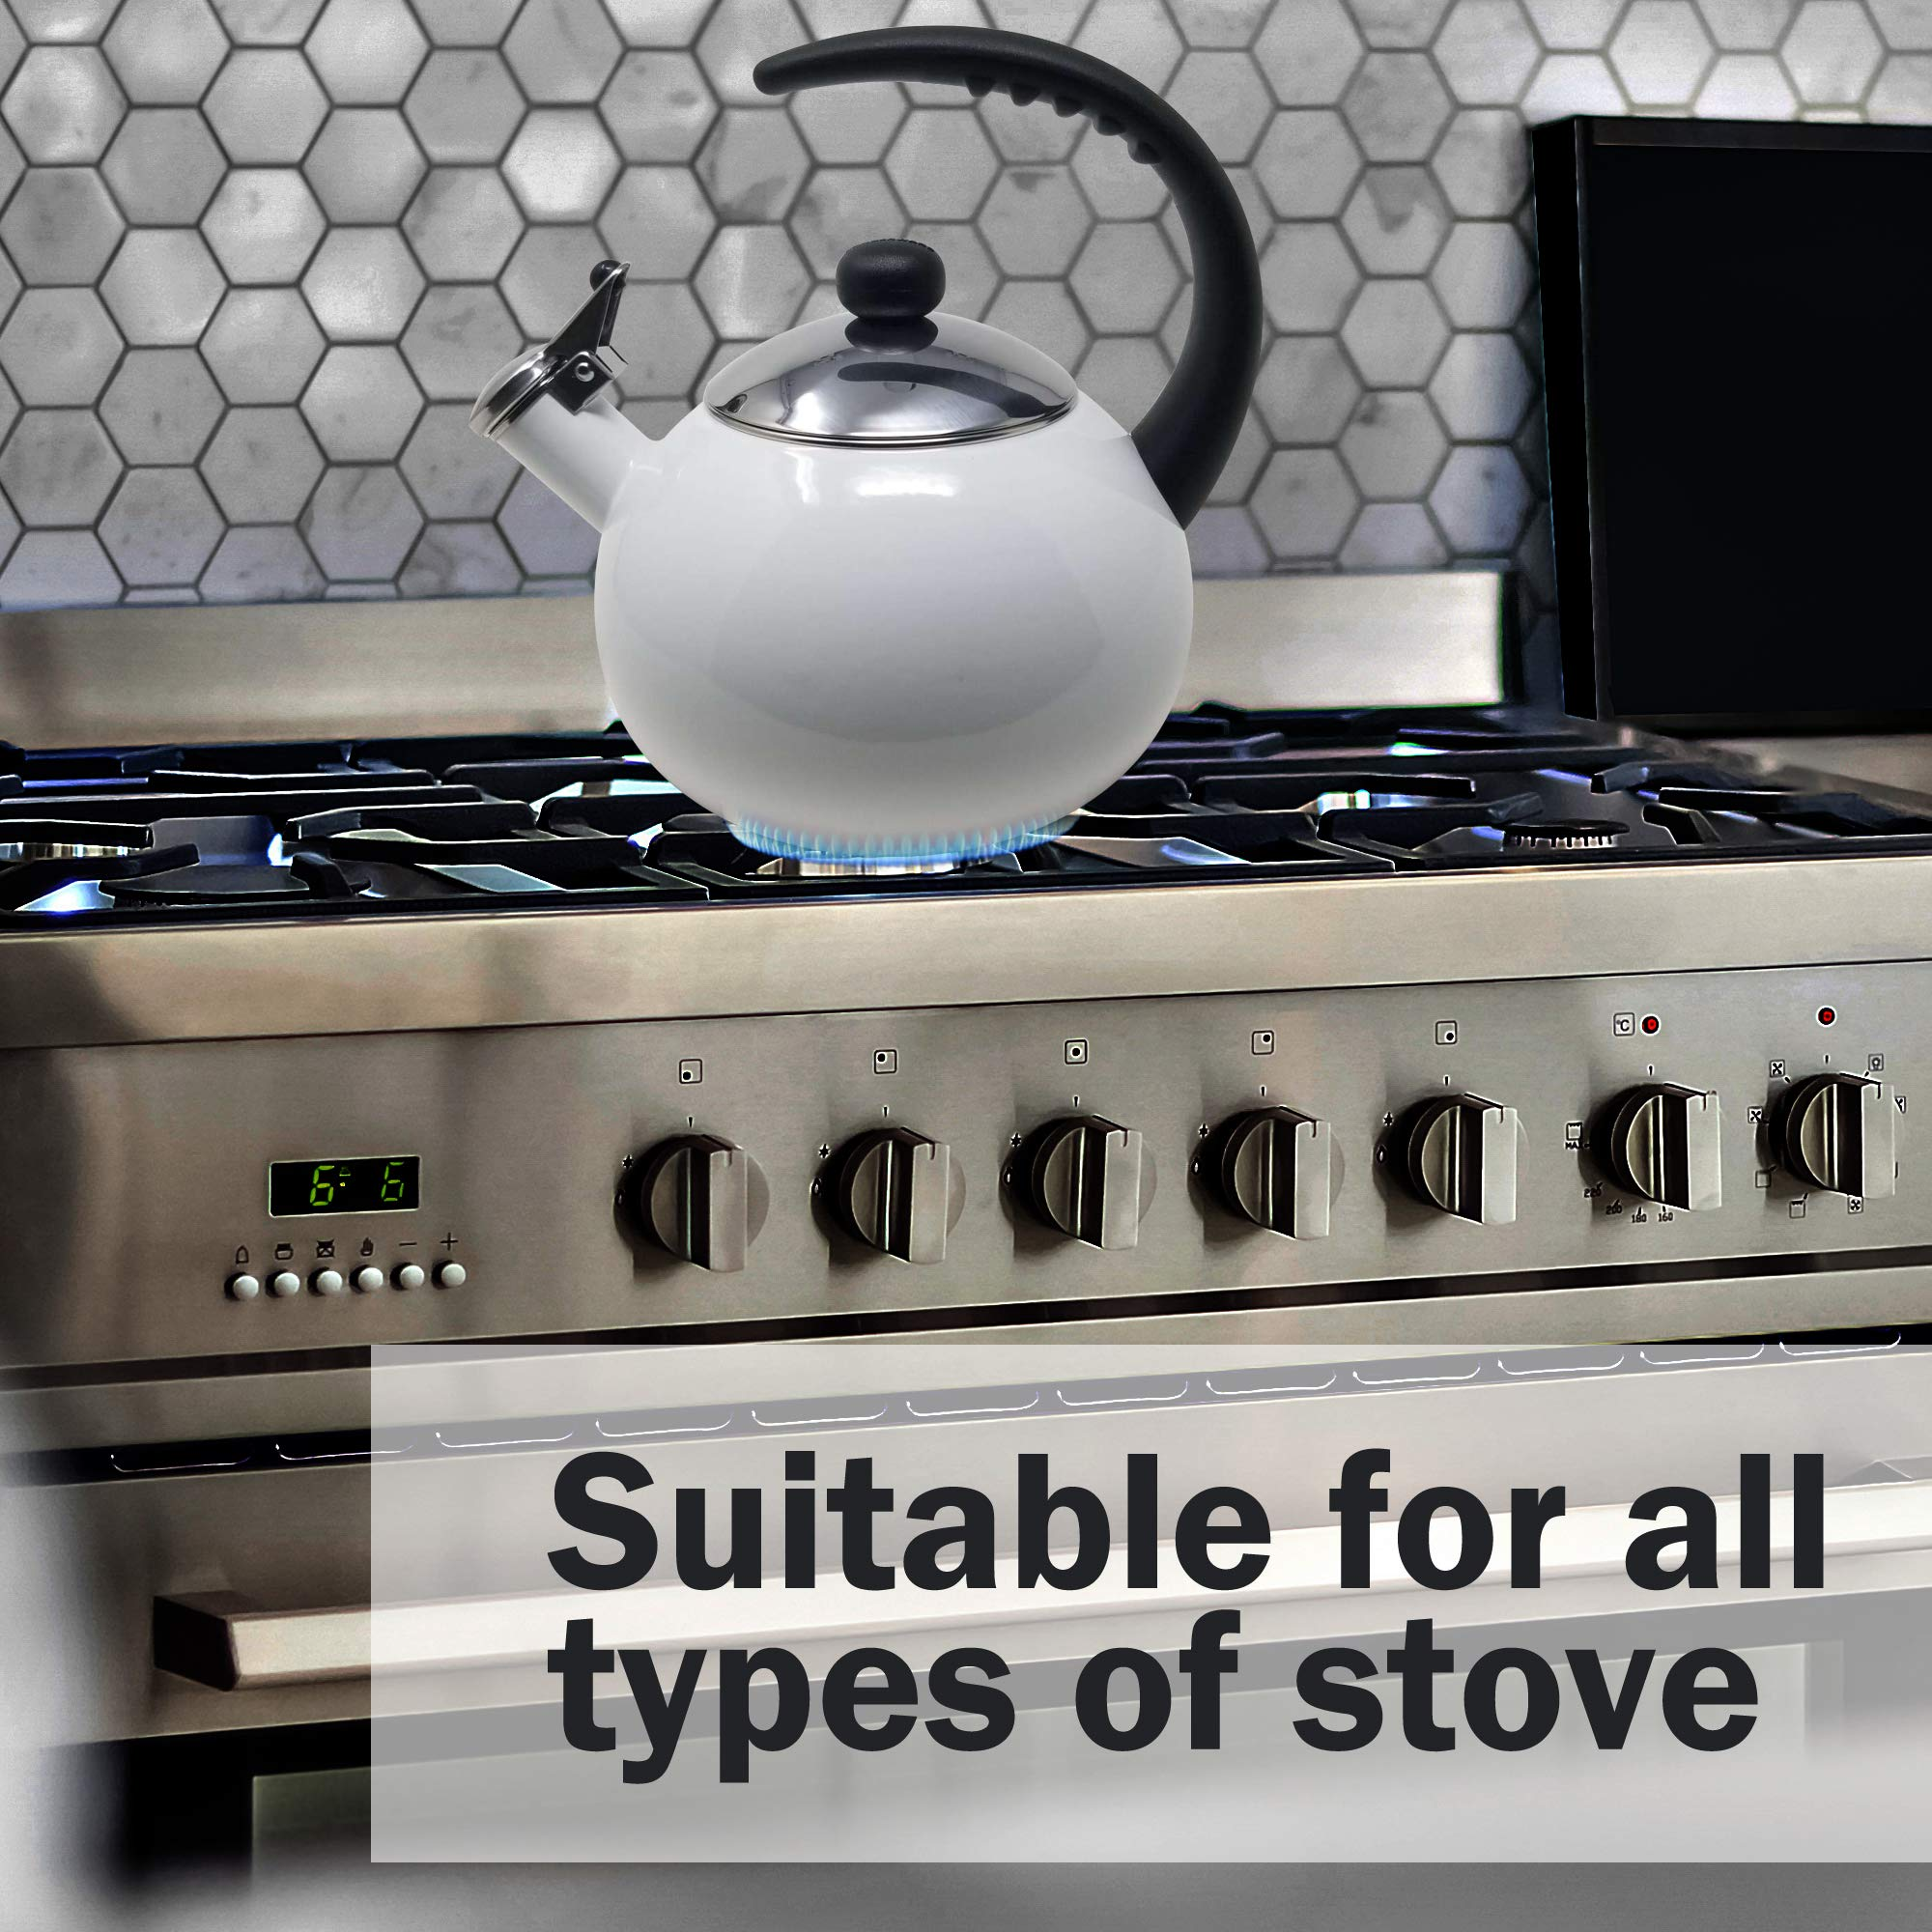 Farberware Luna White Porcelain Enameled Food Grade 18/8 Stainless Steel Soft Whistle Anti- Hot and Anti-Rust TEA KETTLE with Soft Grip Handle Flip Up Spout Heavy Gauge STOVETOP POT 2 QT. by Alfay (Image #3)